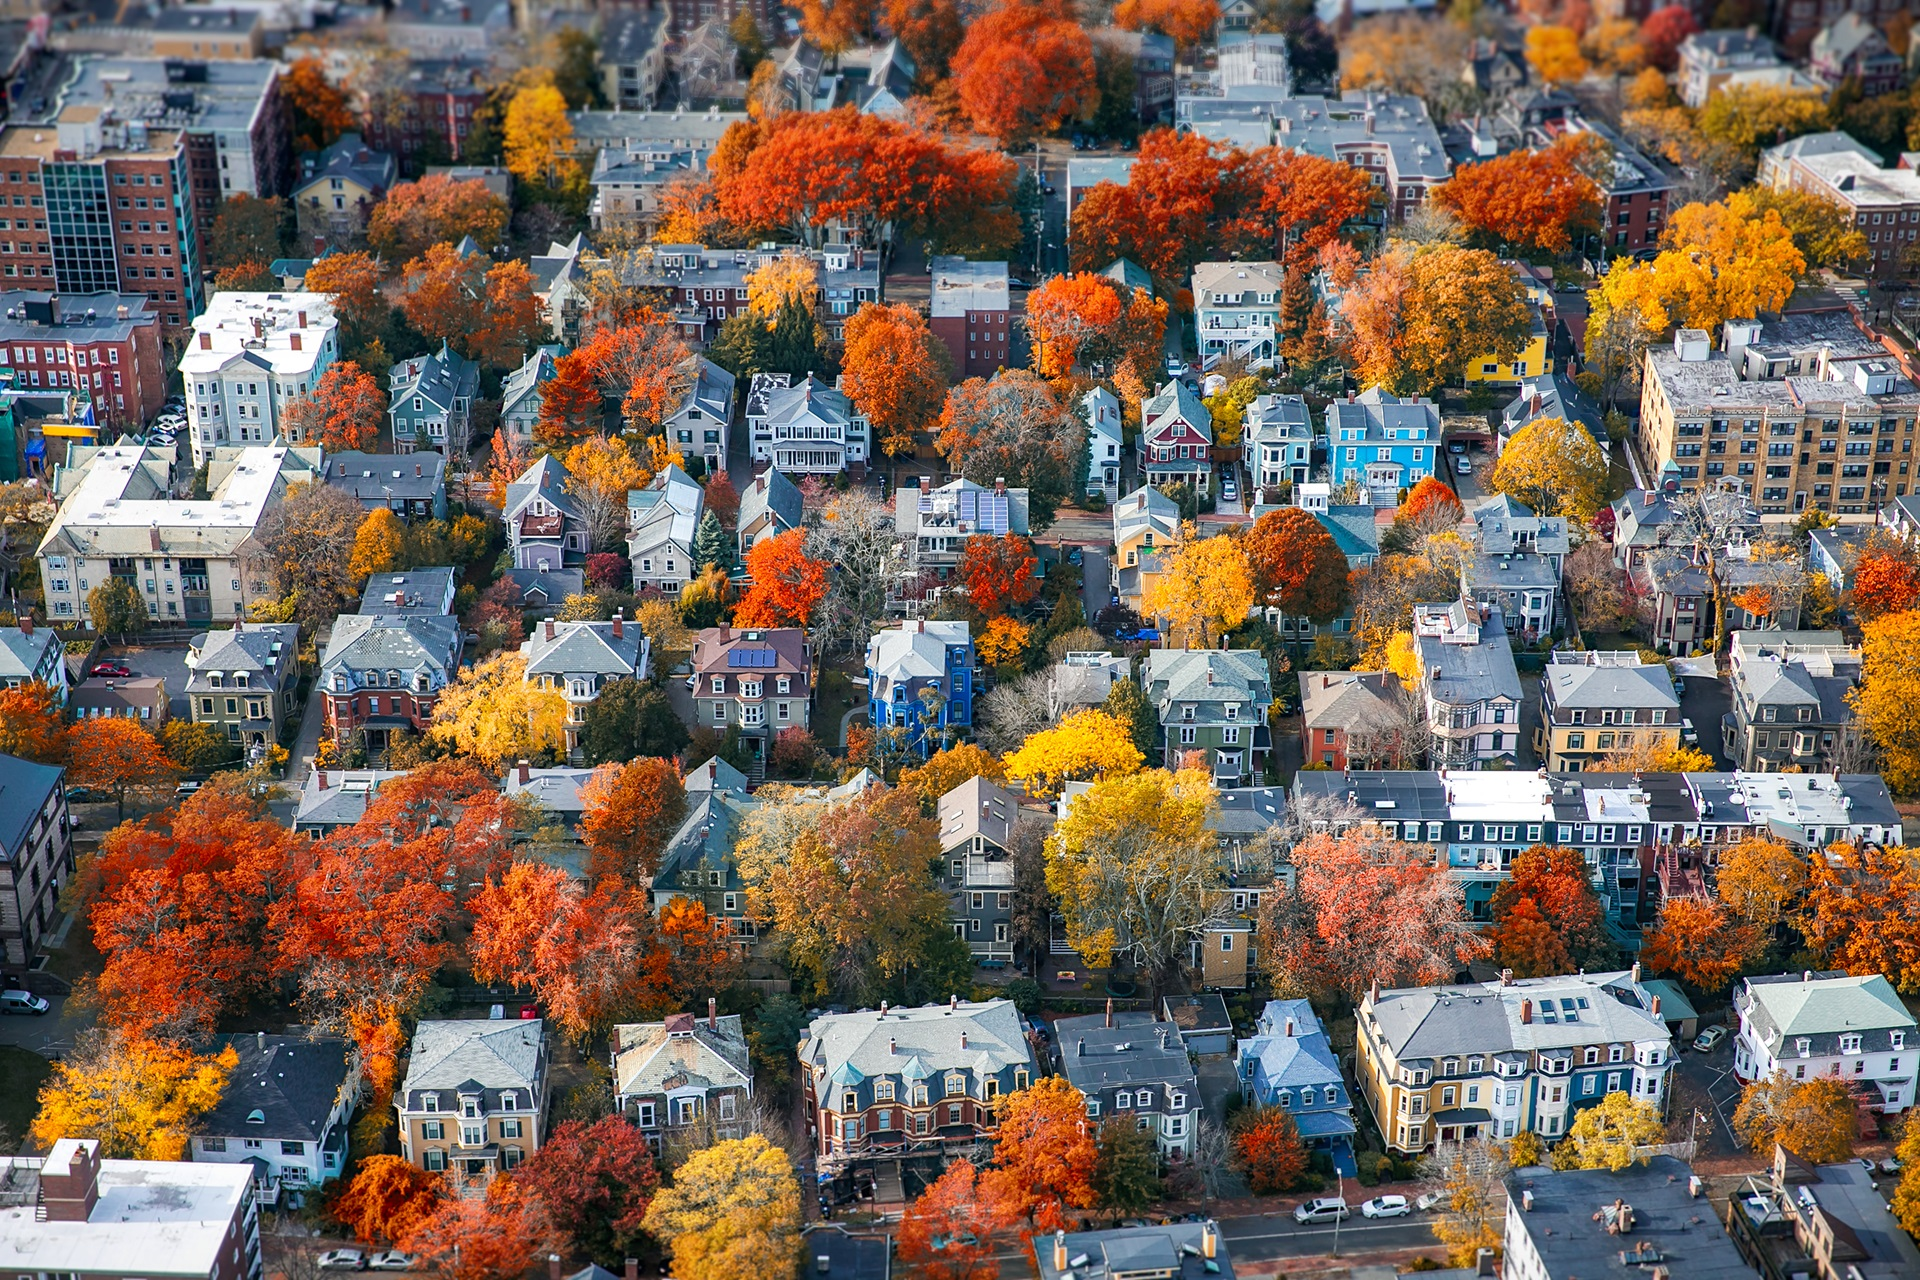 Aerial Photo of Homes and Trees